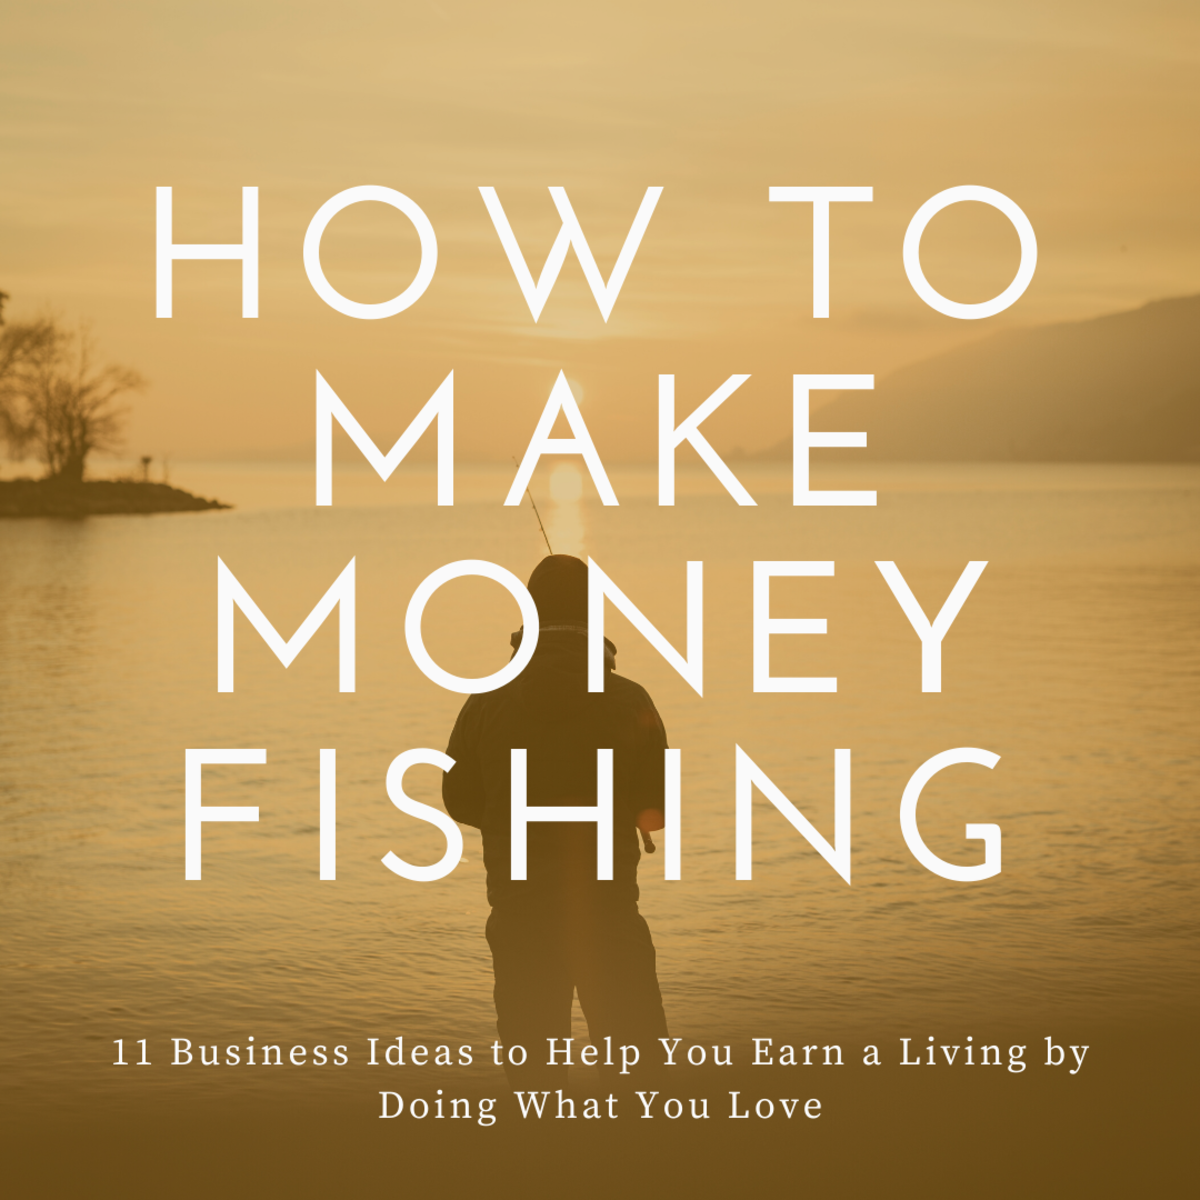 Wondering if you could make a living from fishing? These ideas may help you.